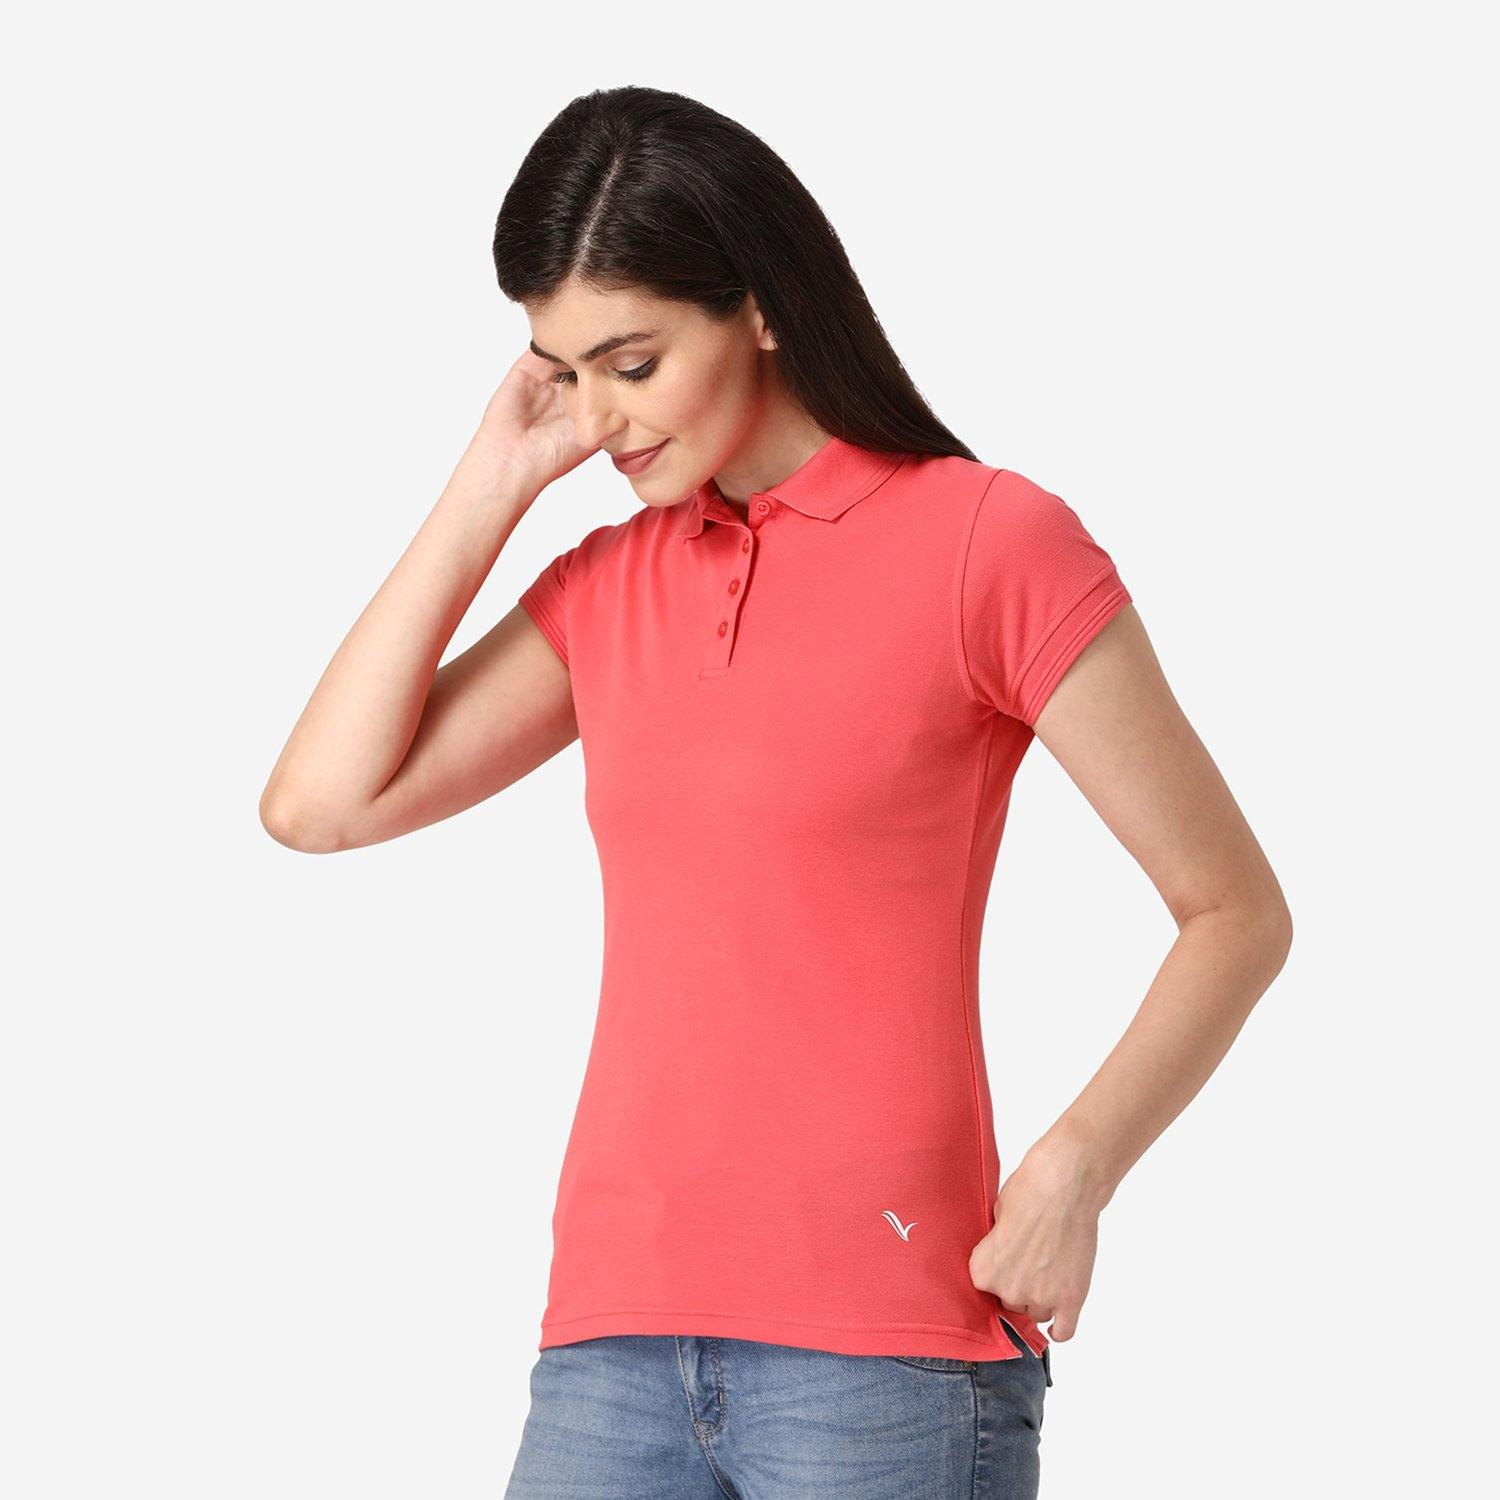 Women's Half Sleeve Casual Polo T-Shirt - Cayenne